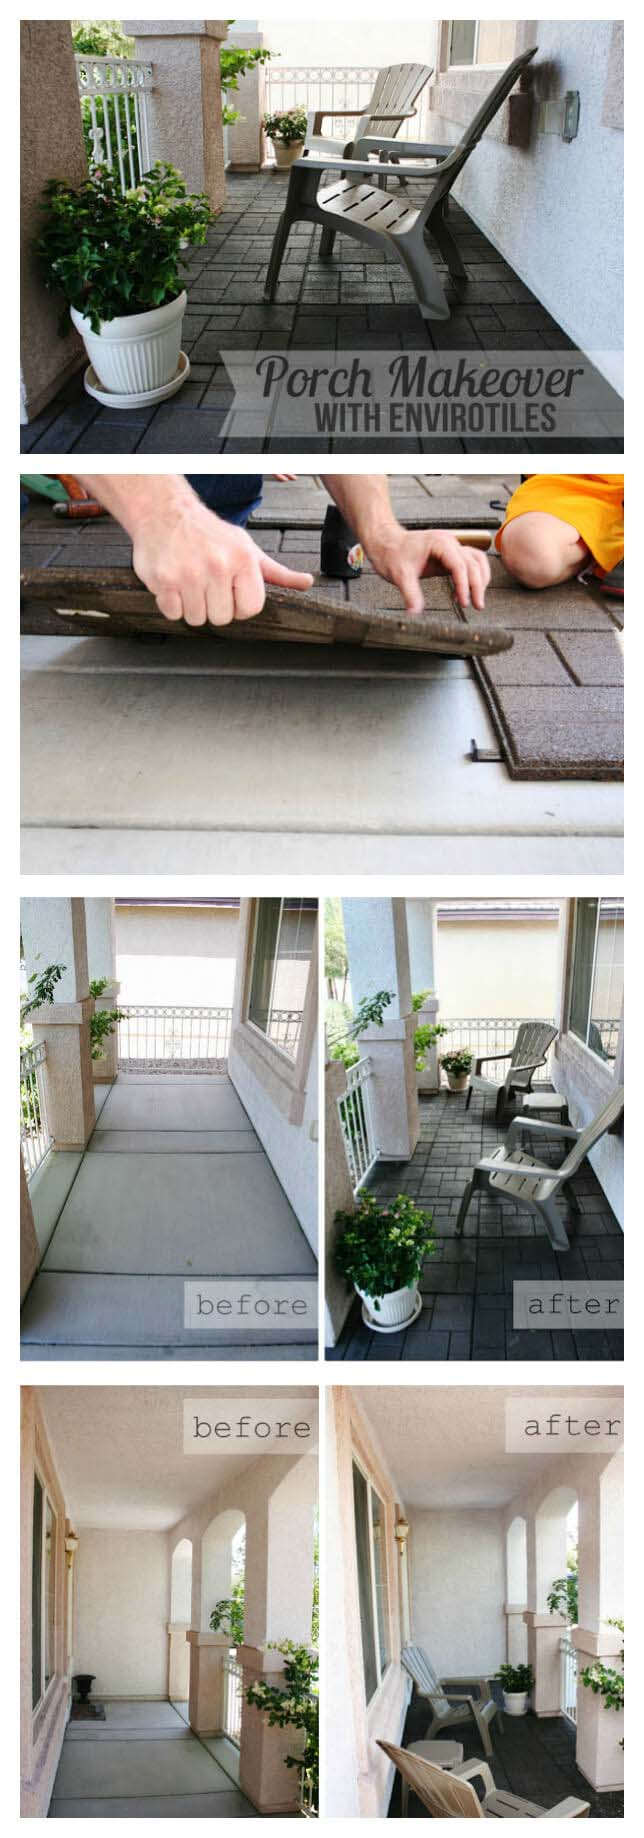 Easy Envirotile Porch Floor Transformation #diy #porch #makeover #decorhomeideas